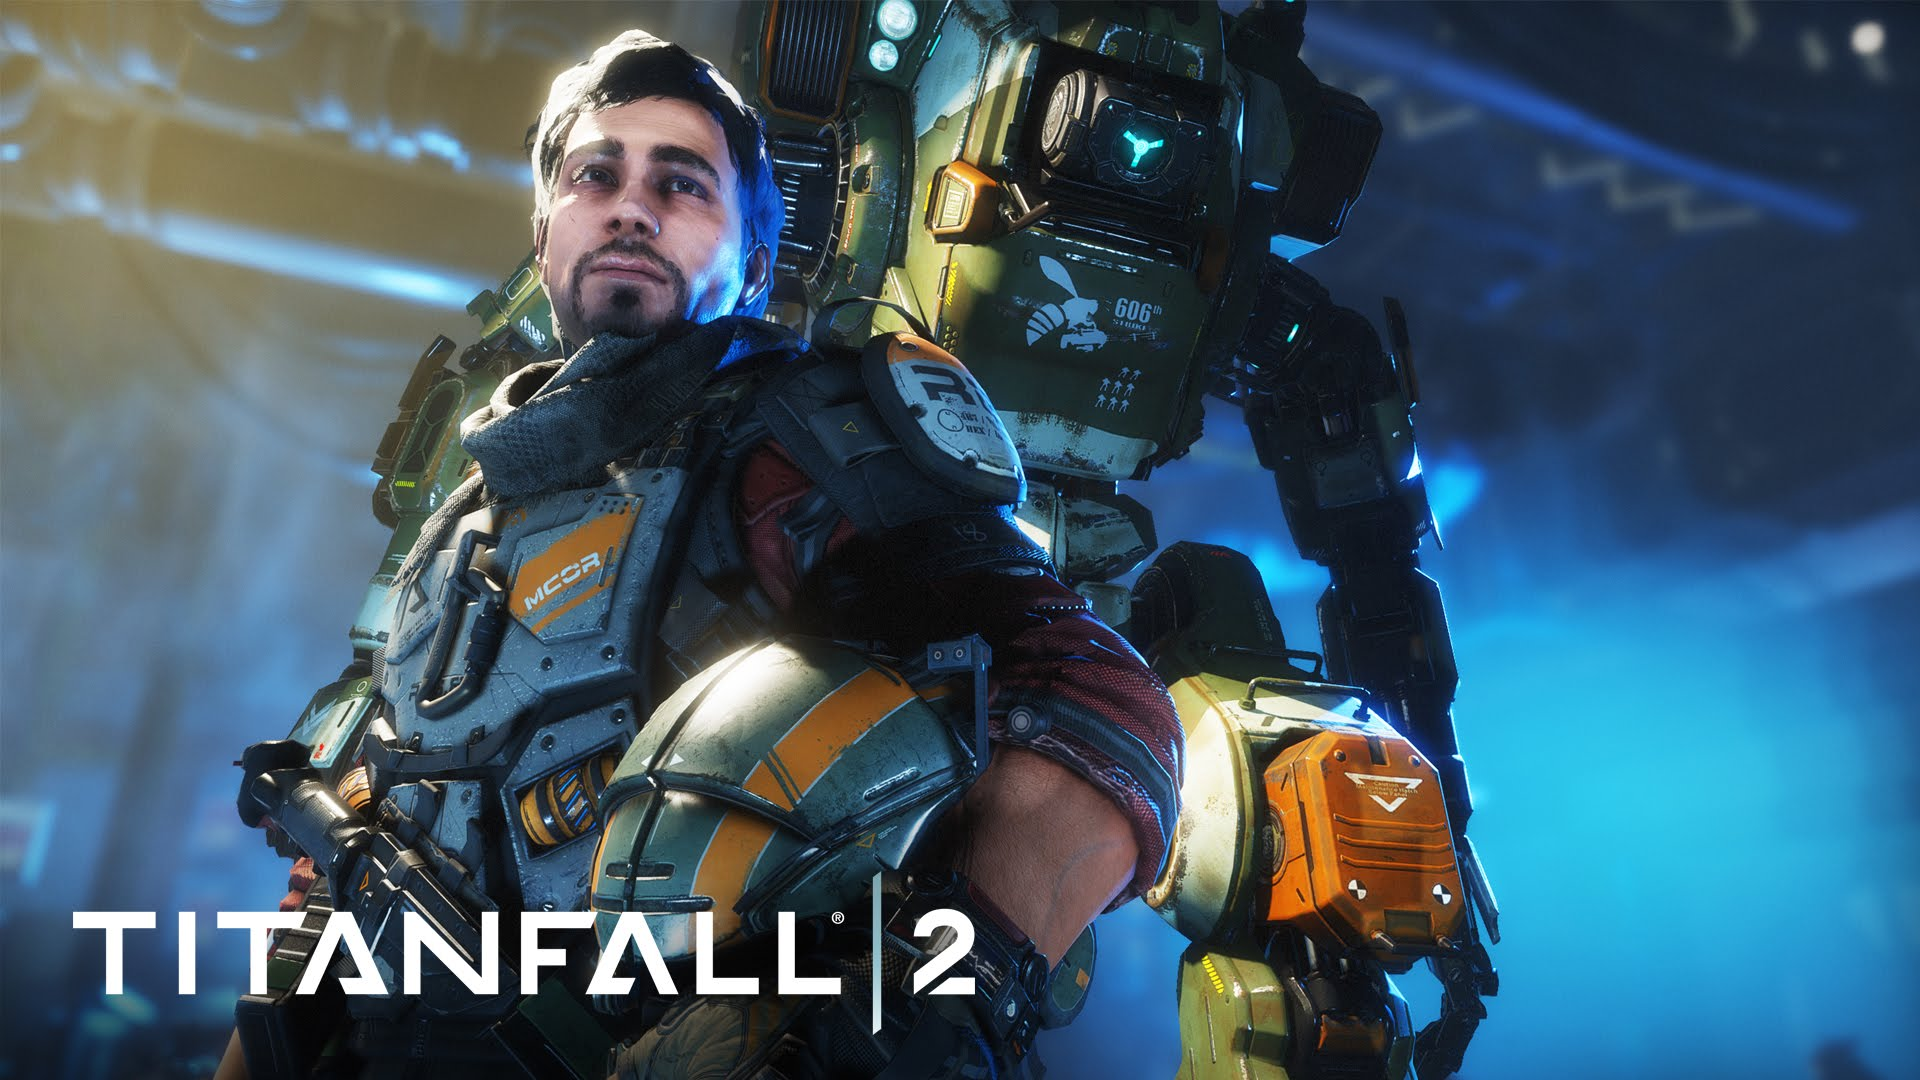 Titanfall 2 (CD-KEY| Origin) Region free all lang